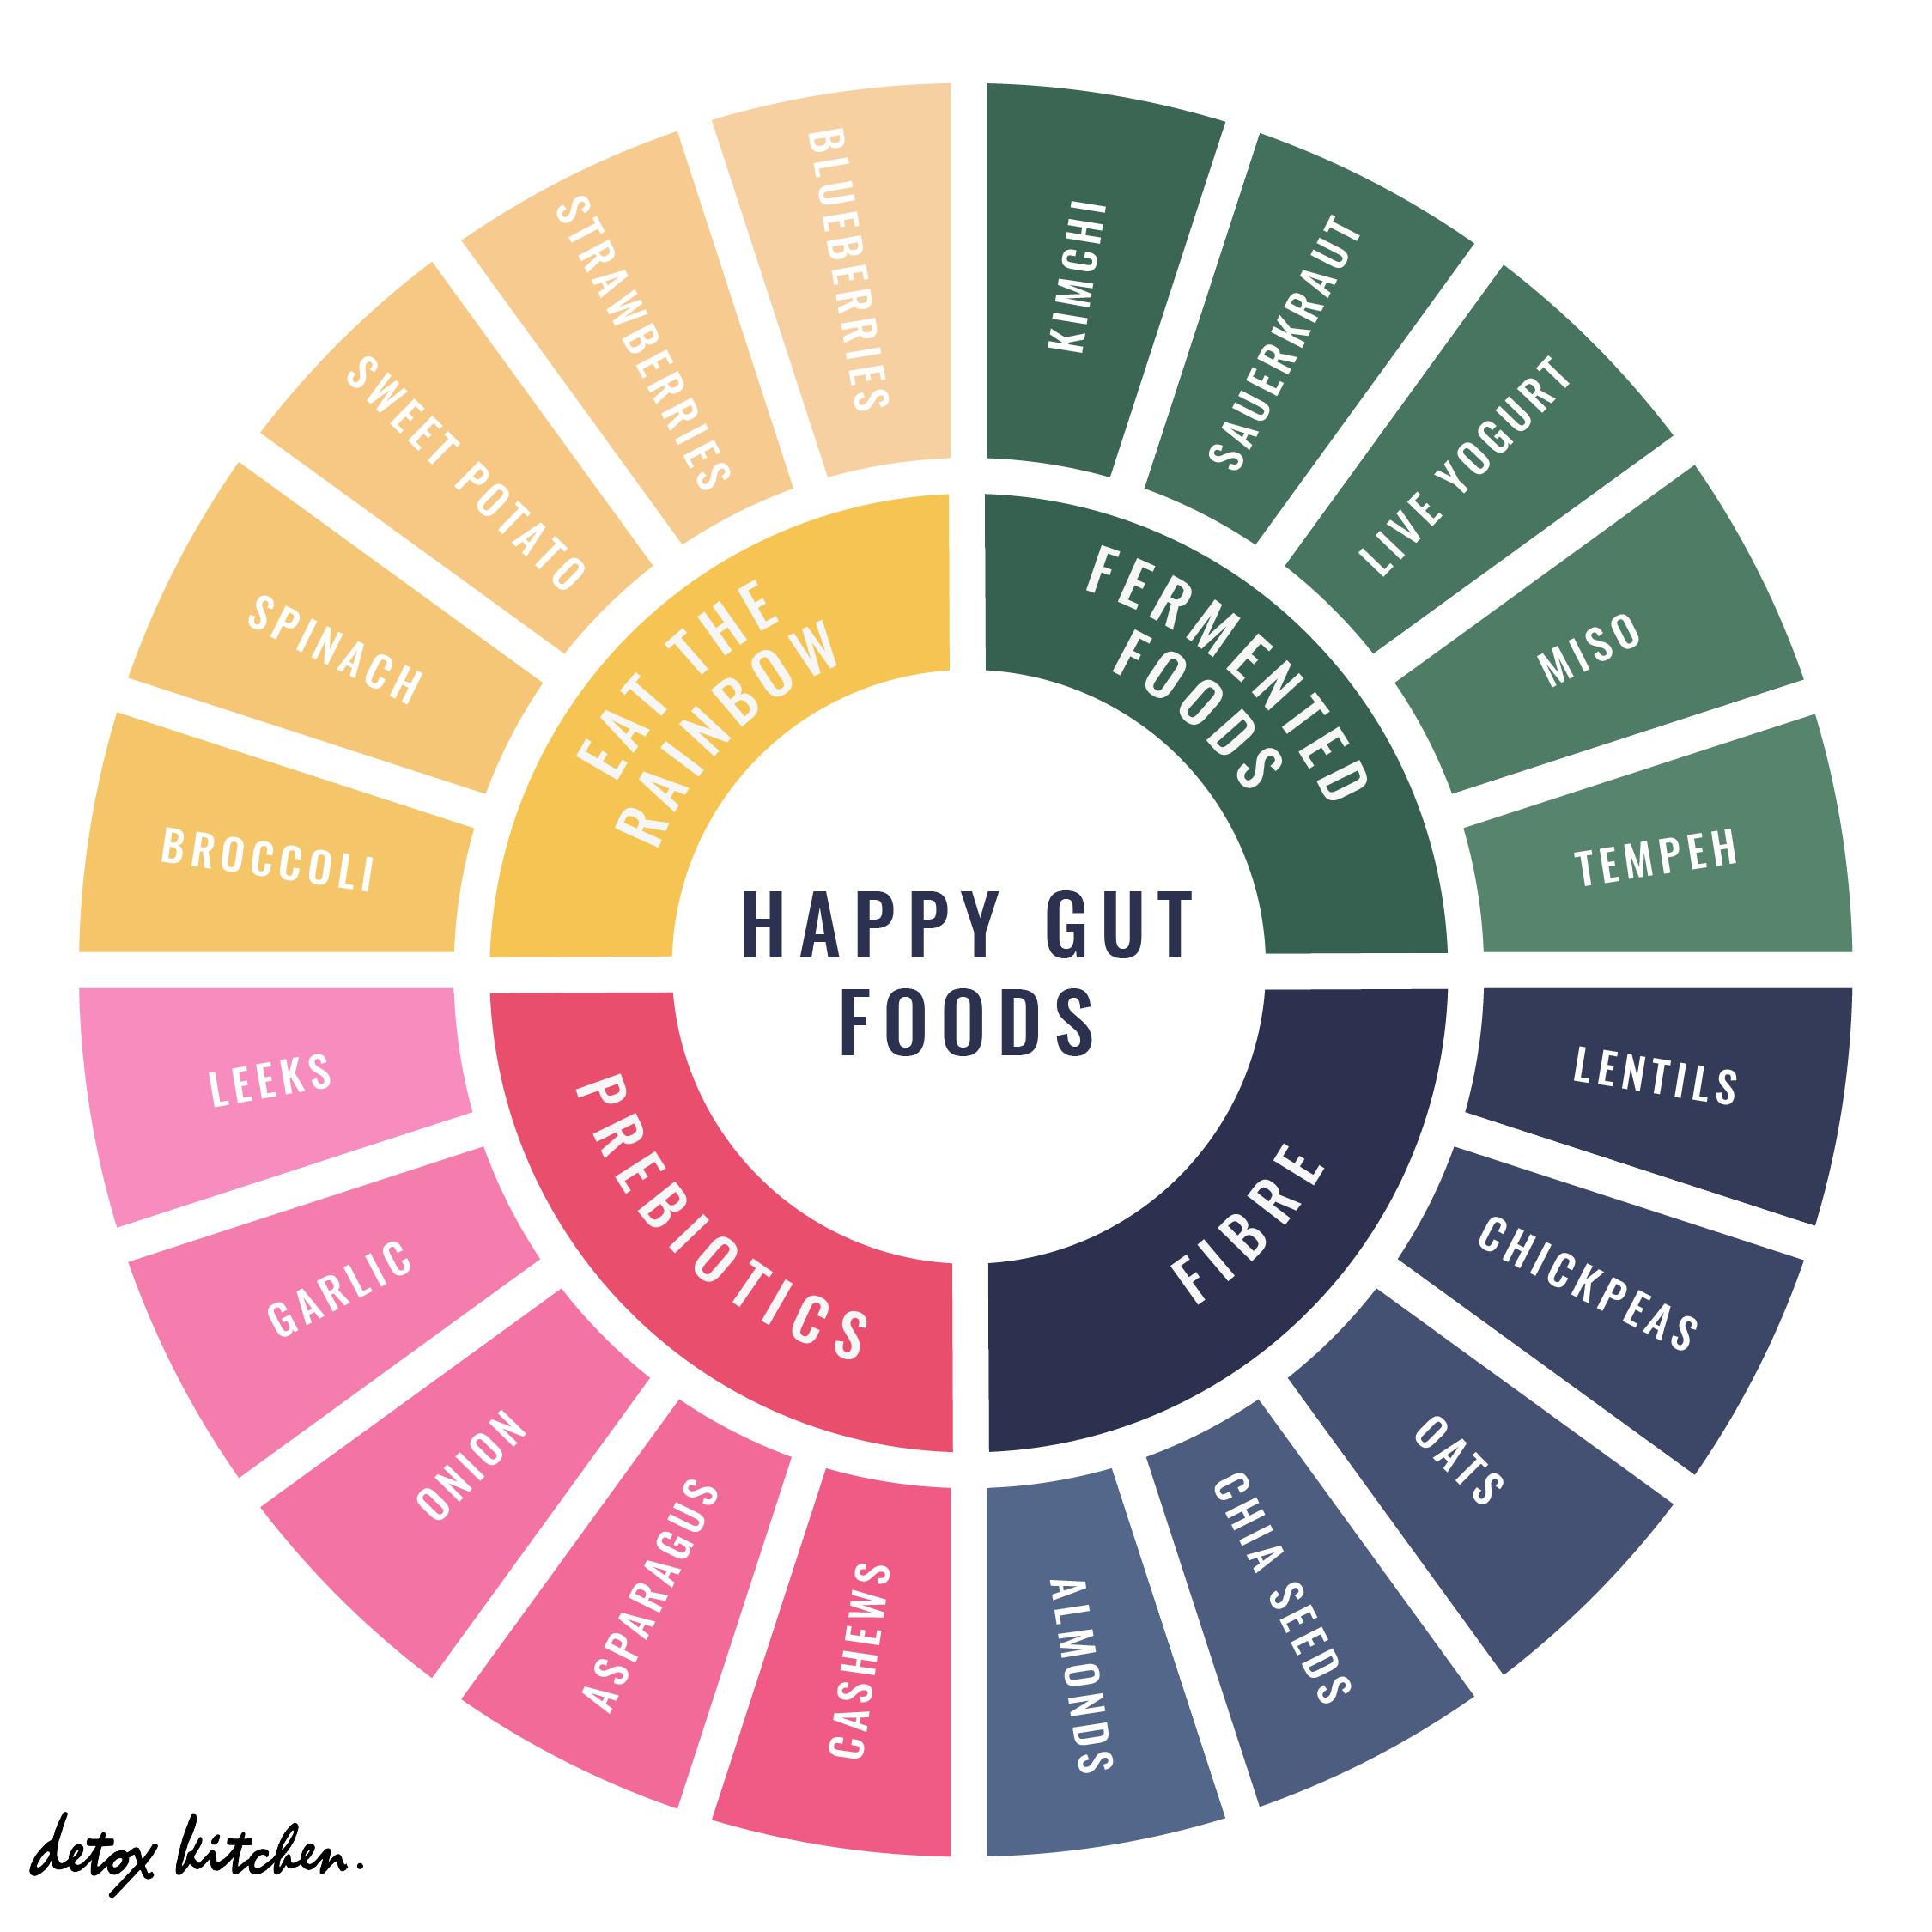 Eve Kalinik on what to eat for a happy healthy gut